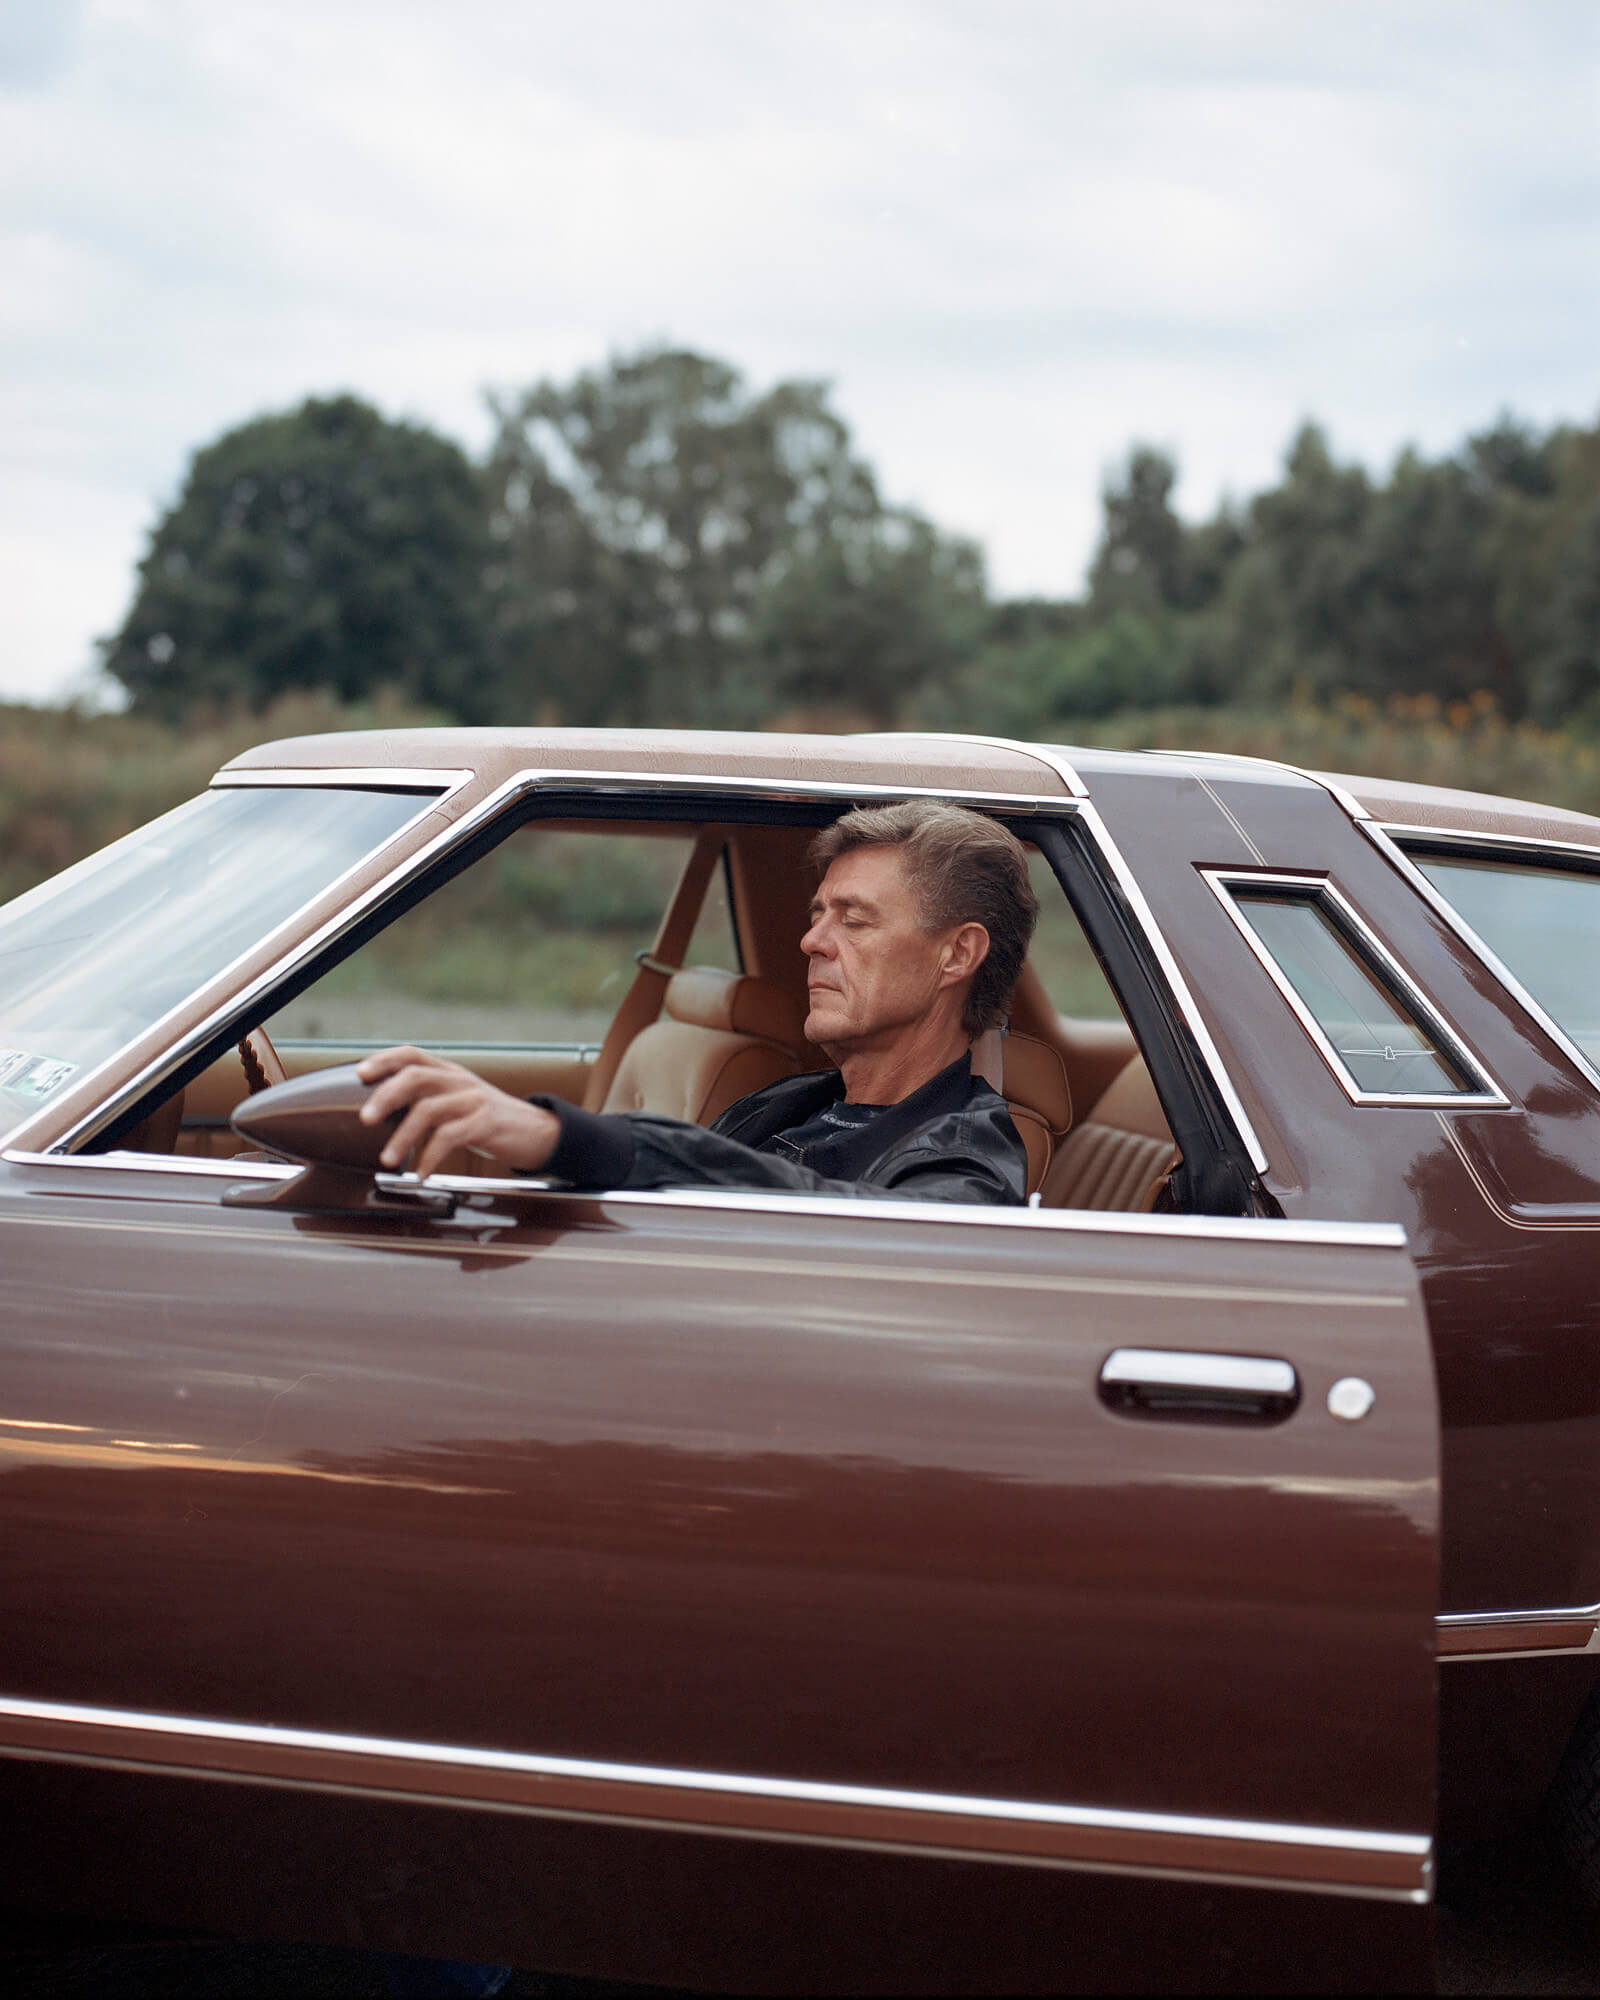 Tadas Kazakevicius - Between Two Shores the south west collective of photography ltd man sat in car